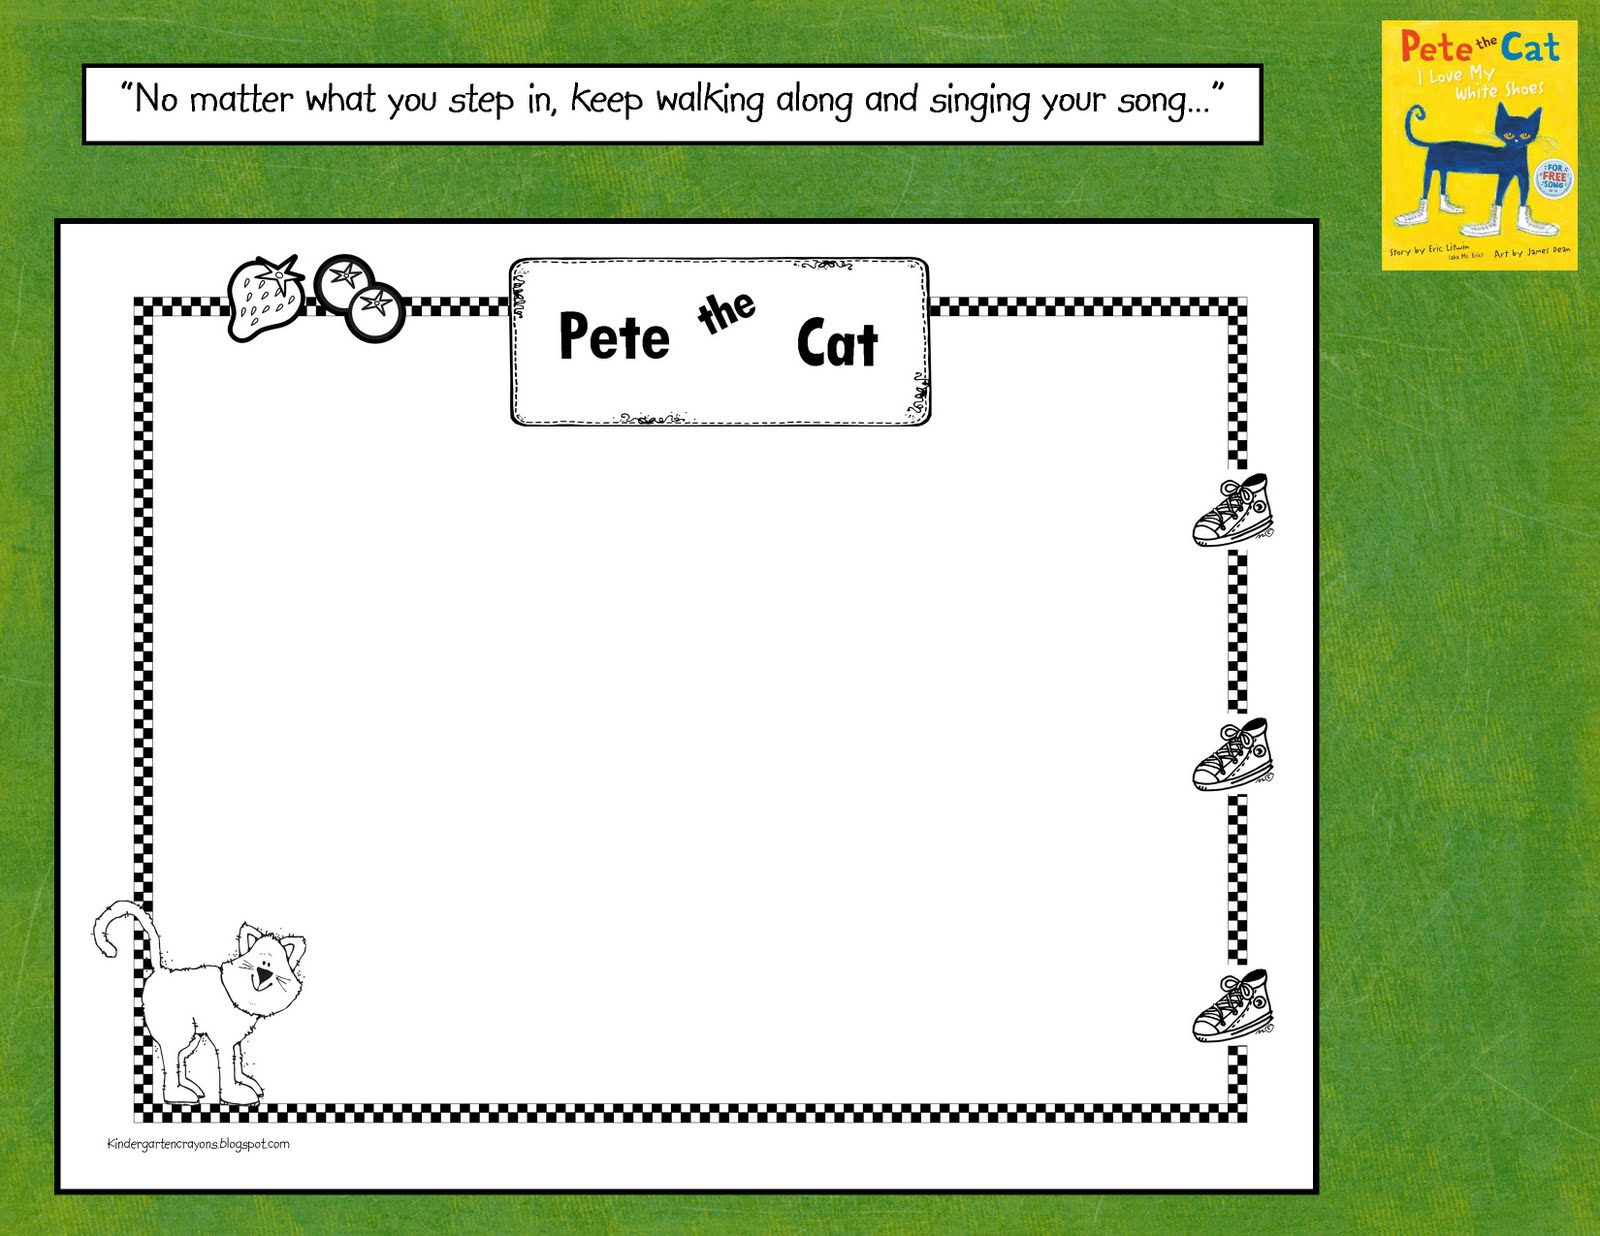 Kindergarten Crayons Pete The Cat Ep Walking Along Singing Your Song